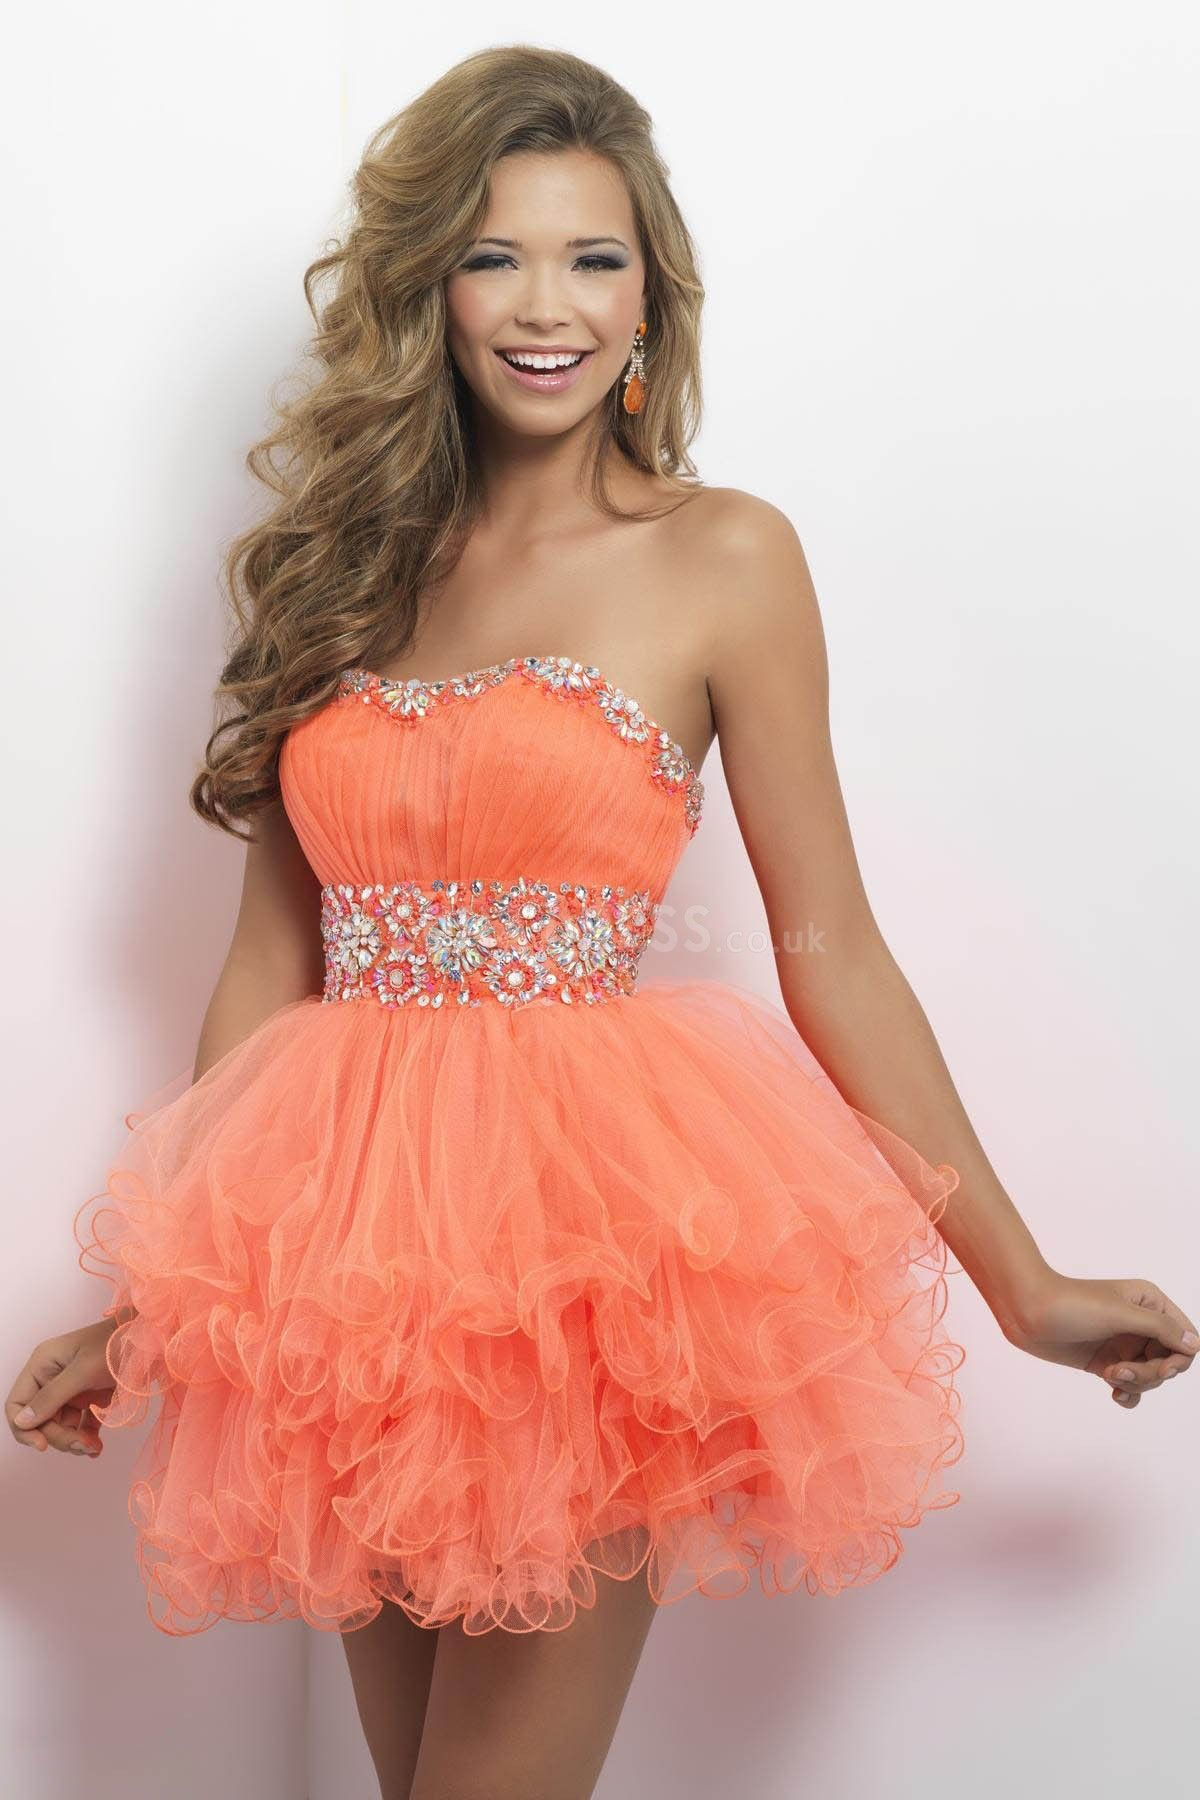 78  images about Formal dresses on Pinterest - Beaded prom dress ...